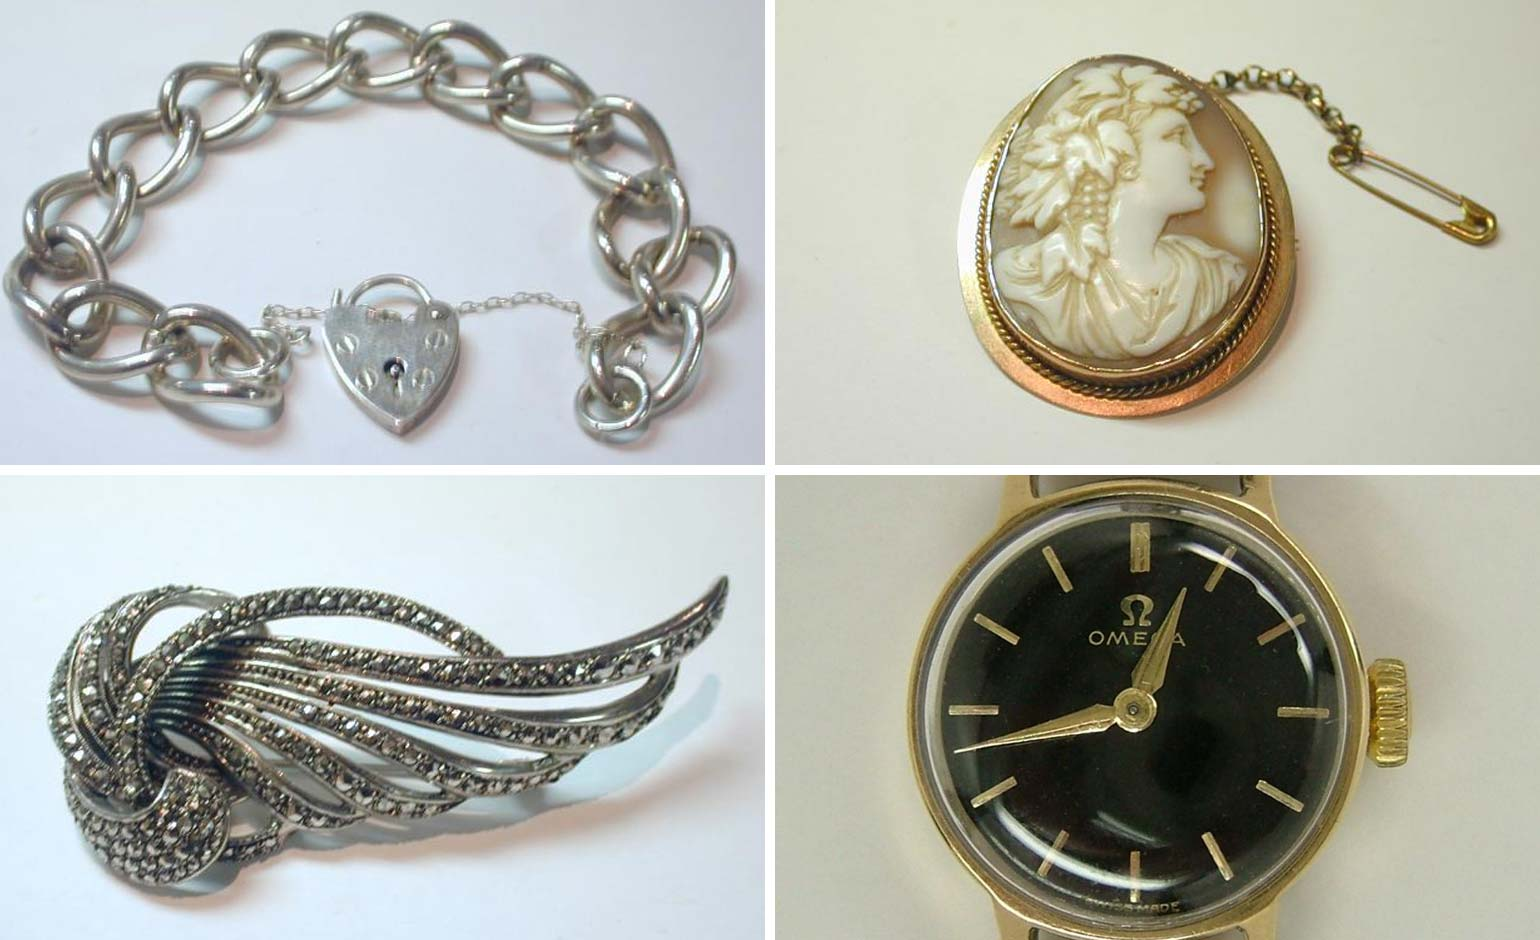 Appeal for information after 50 items of jewellery stolen during burglary in Bath